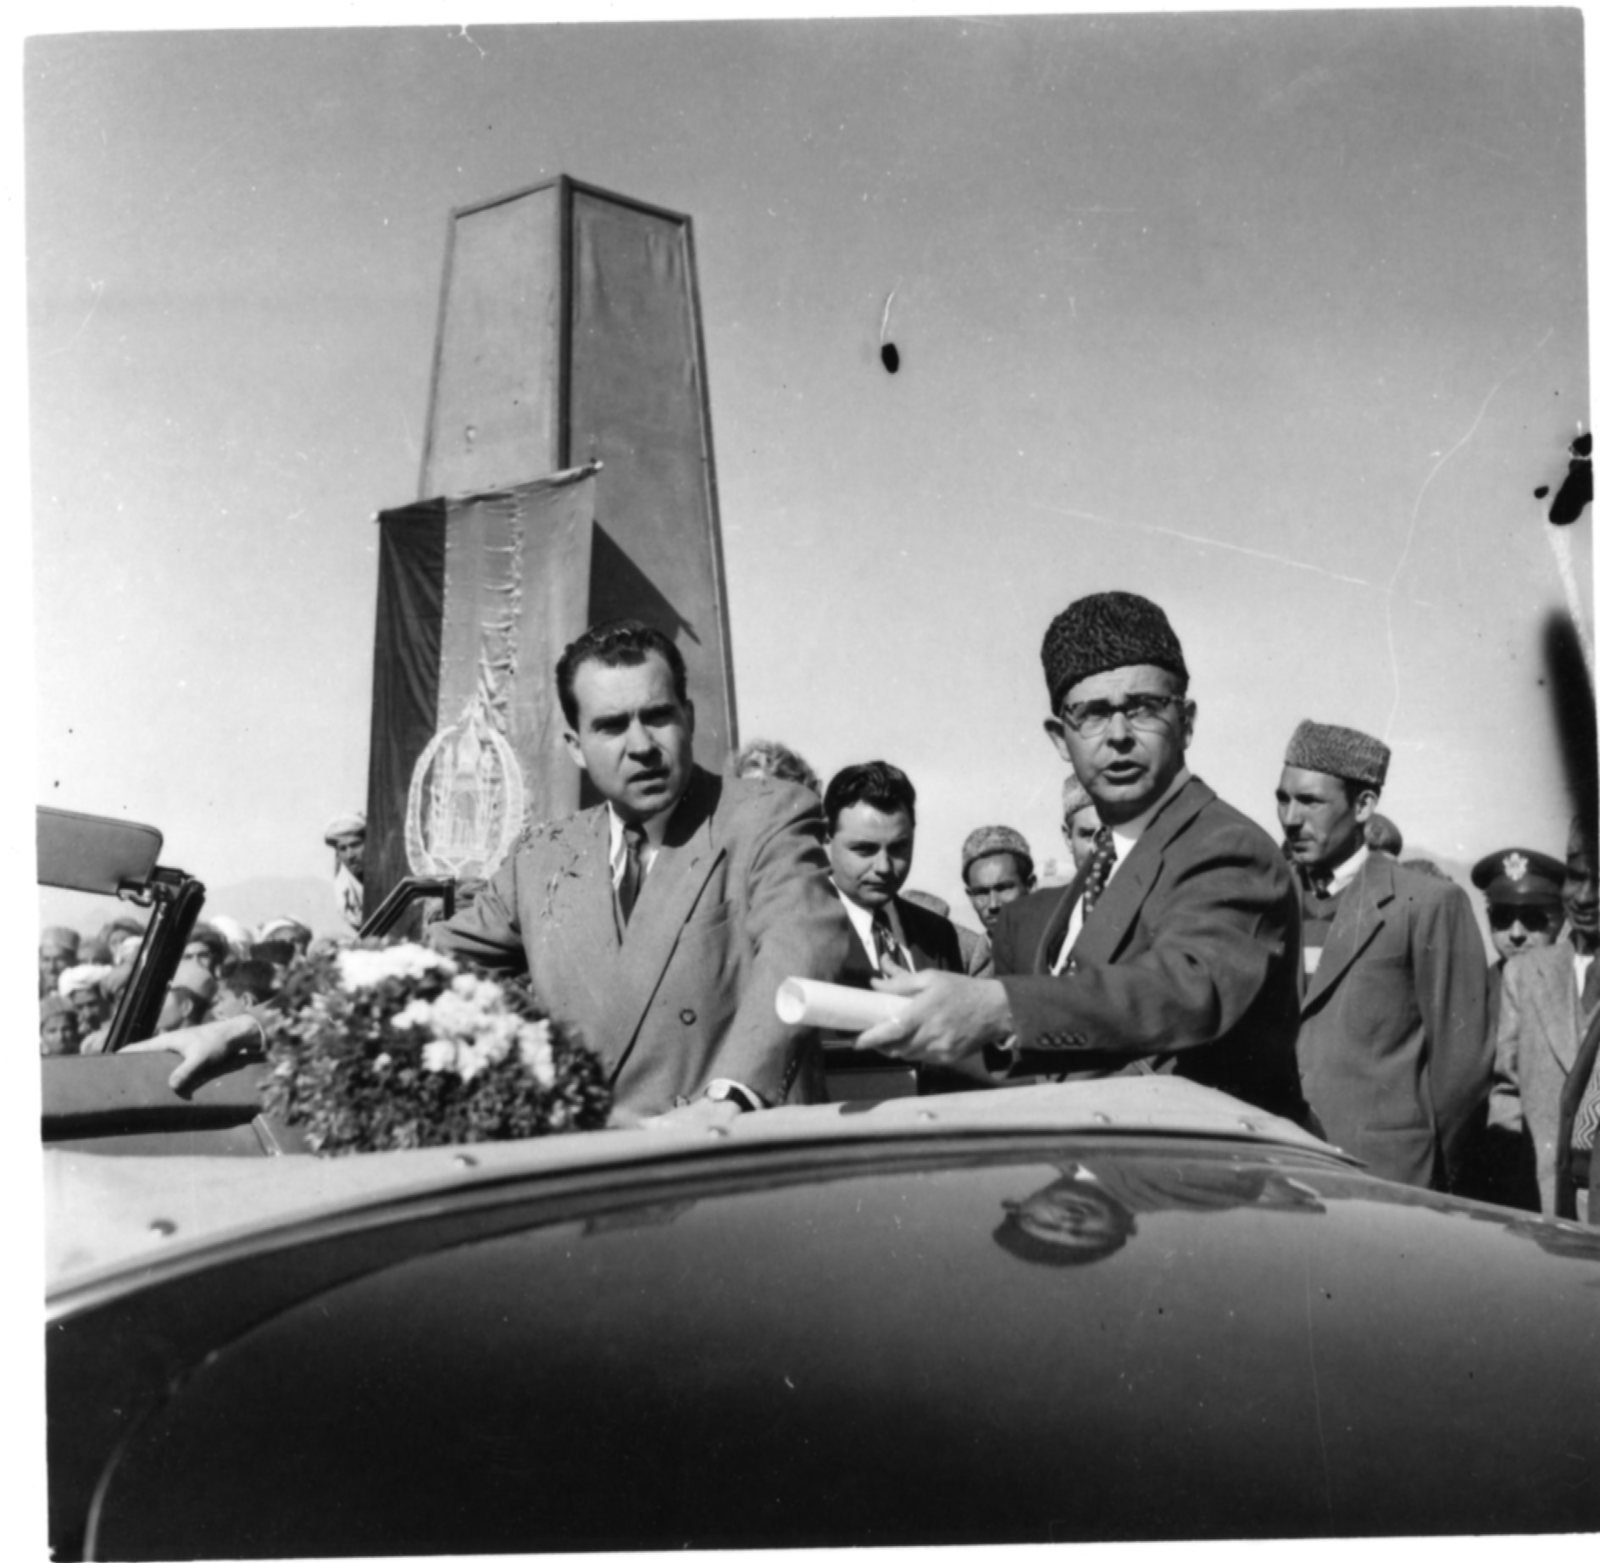 Vice President Richard Nixon enters an automobile in Afghanistan